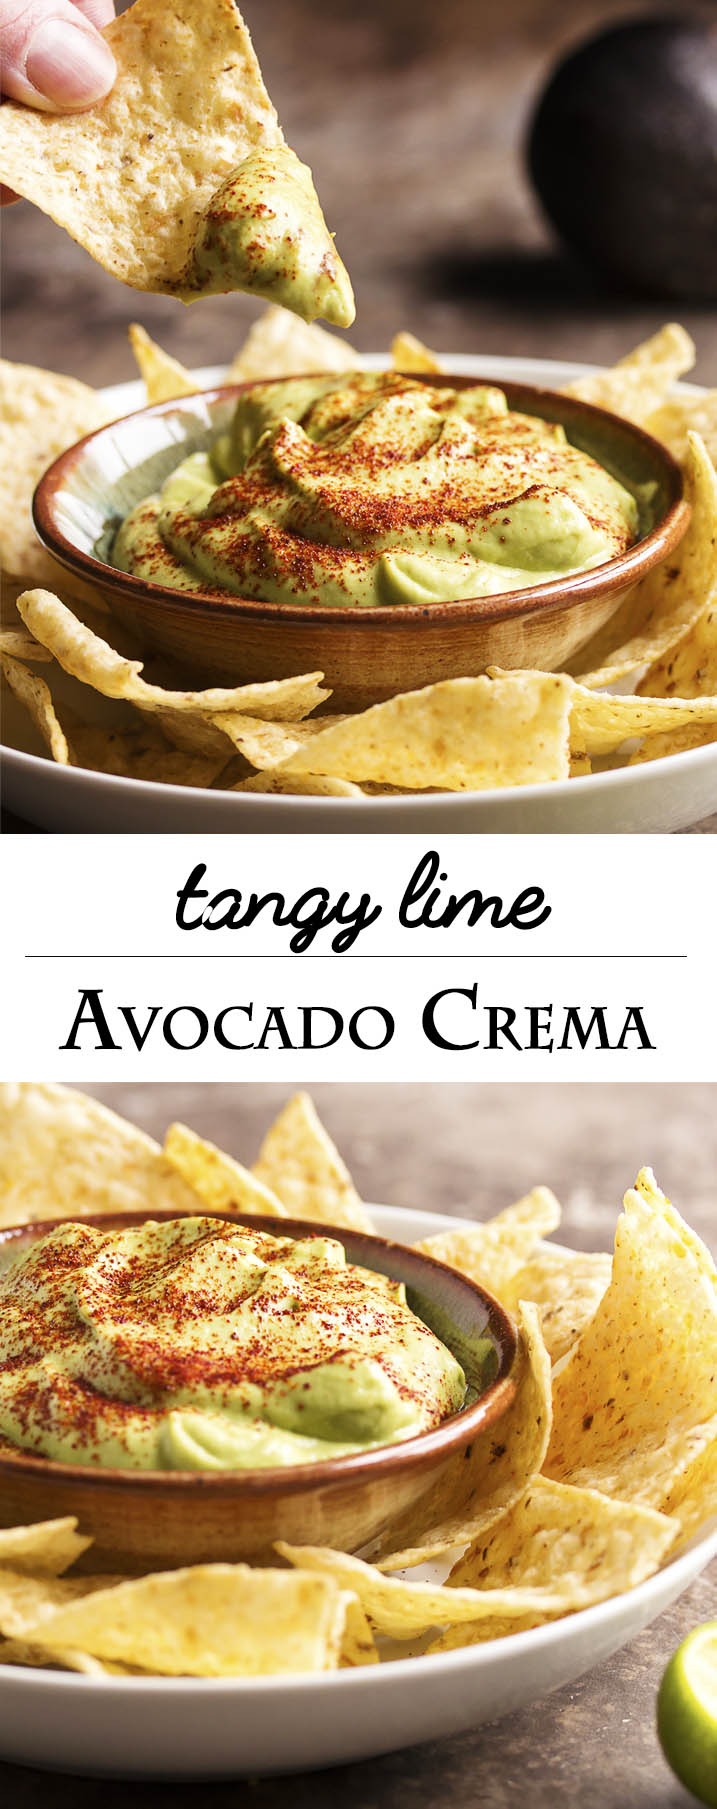 Tangy Lime Avocado Crema - Avocados are pureed with lime juice and a touch of sour cream in this Avocado Crema. Great as a taco topping, a sauce, or a dip! | justalittlebitofbacon.com